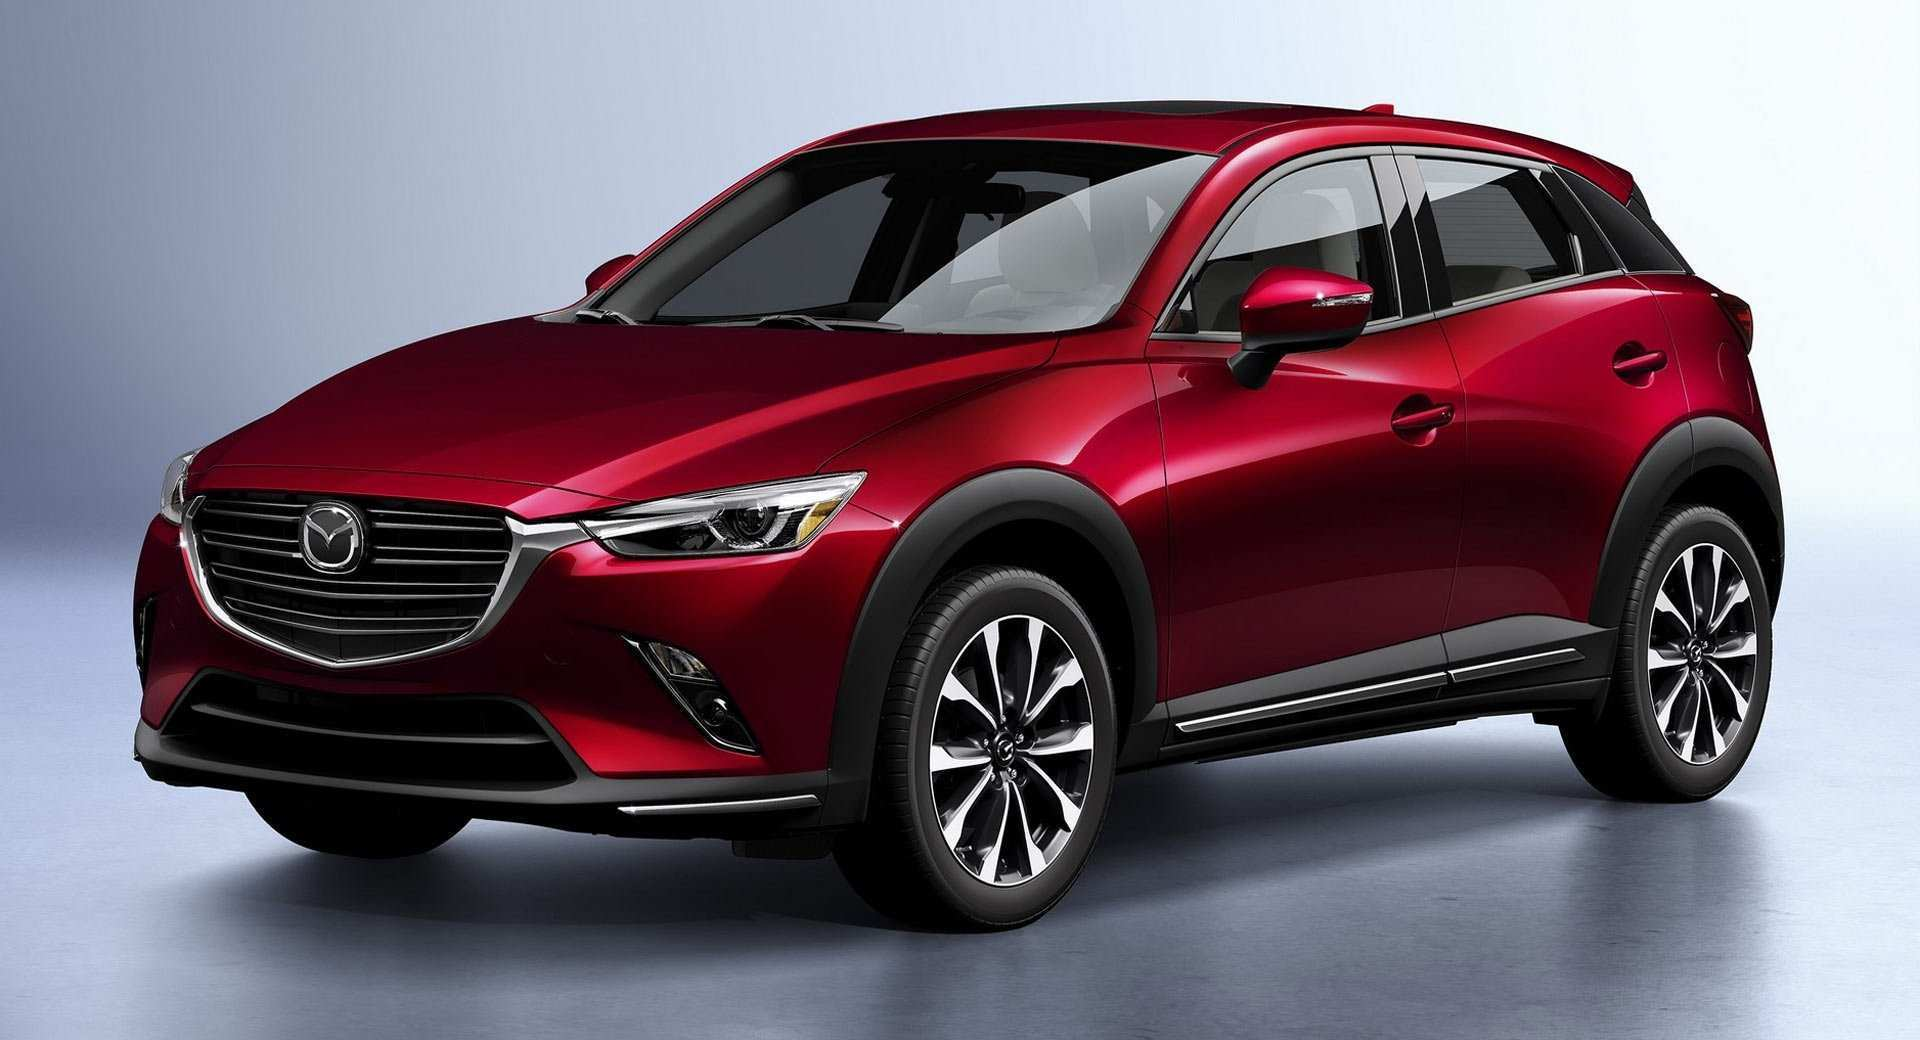 35 The Best Mazda Cx 7 2020 Redesign And Concept